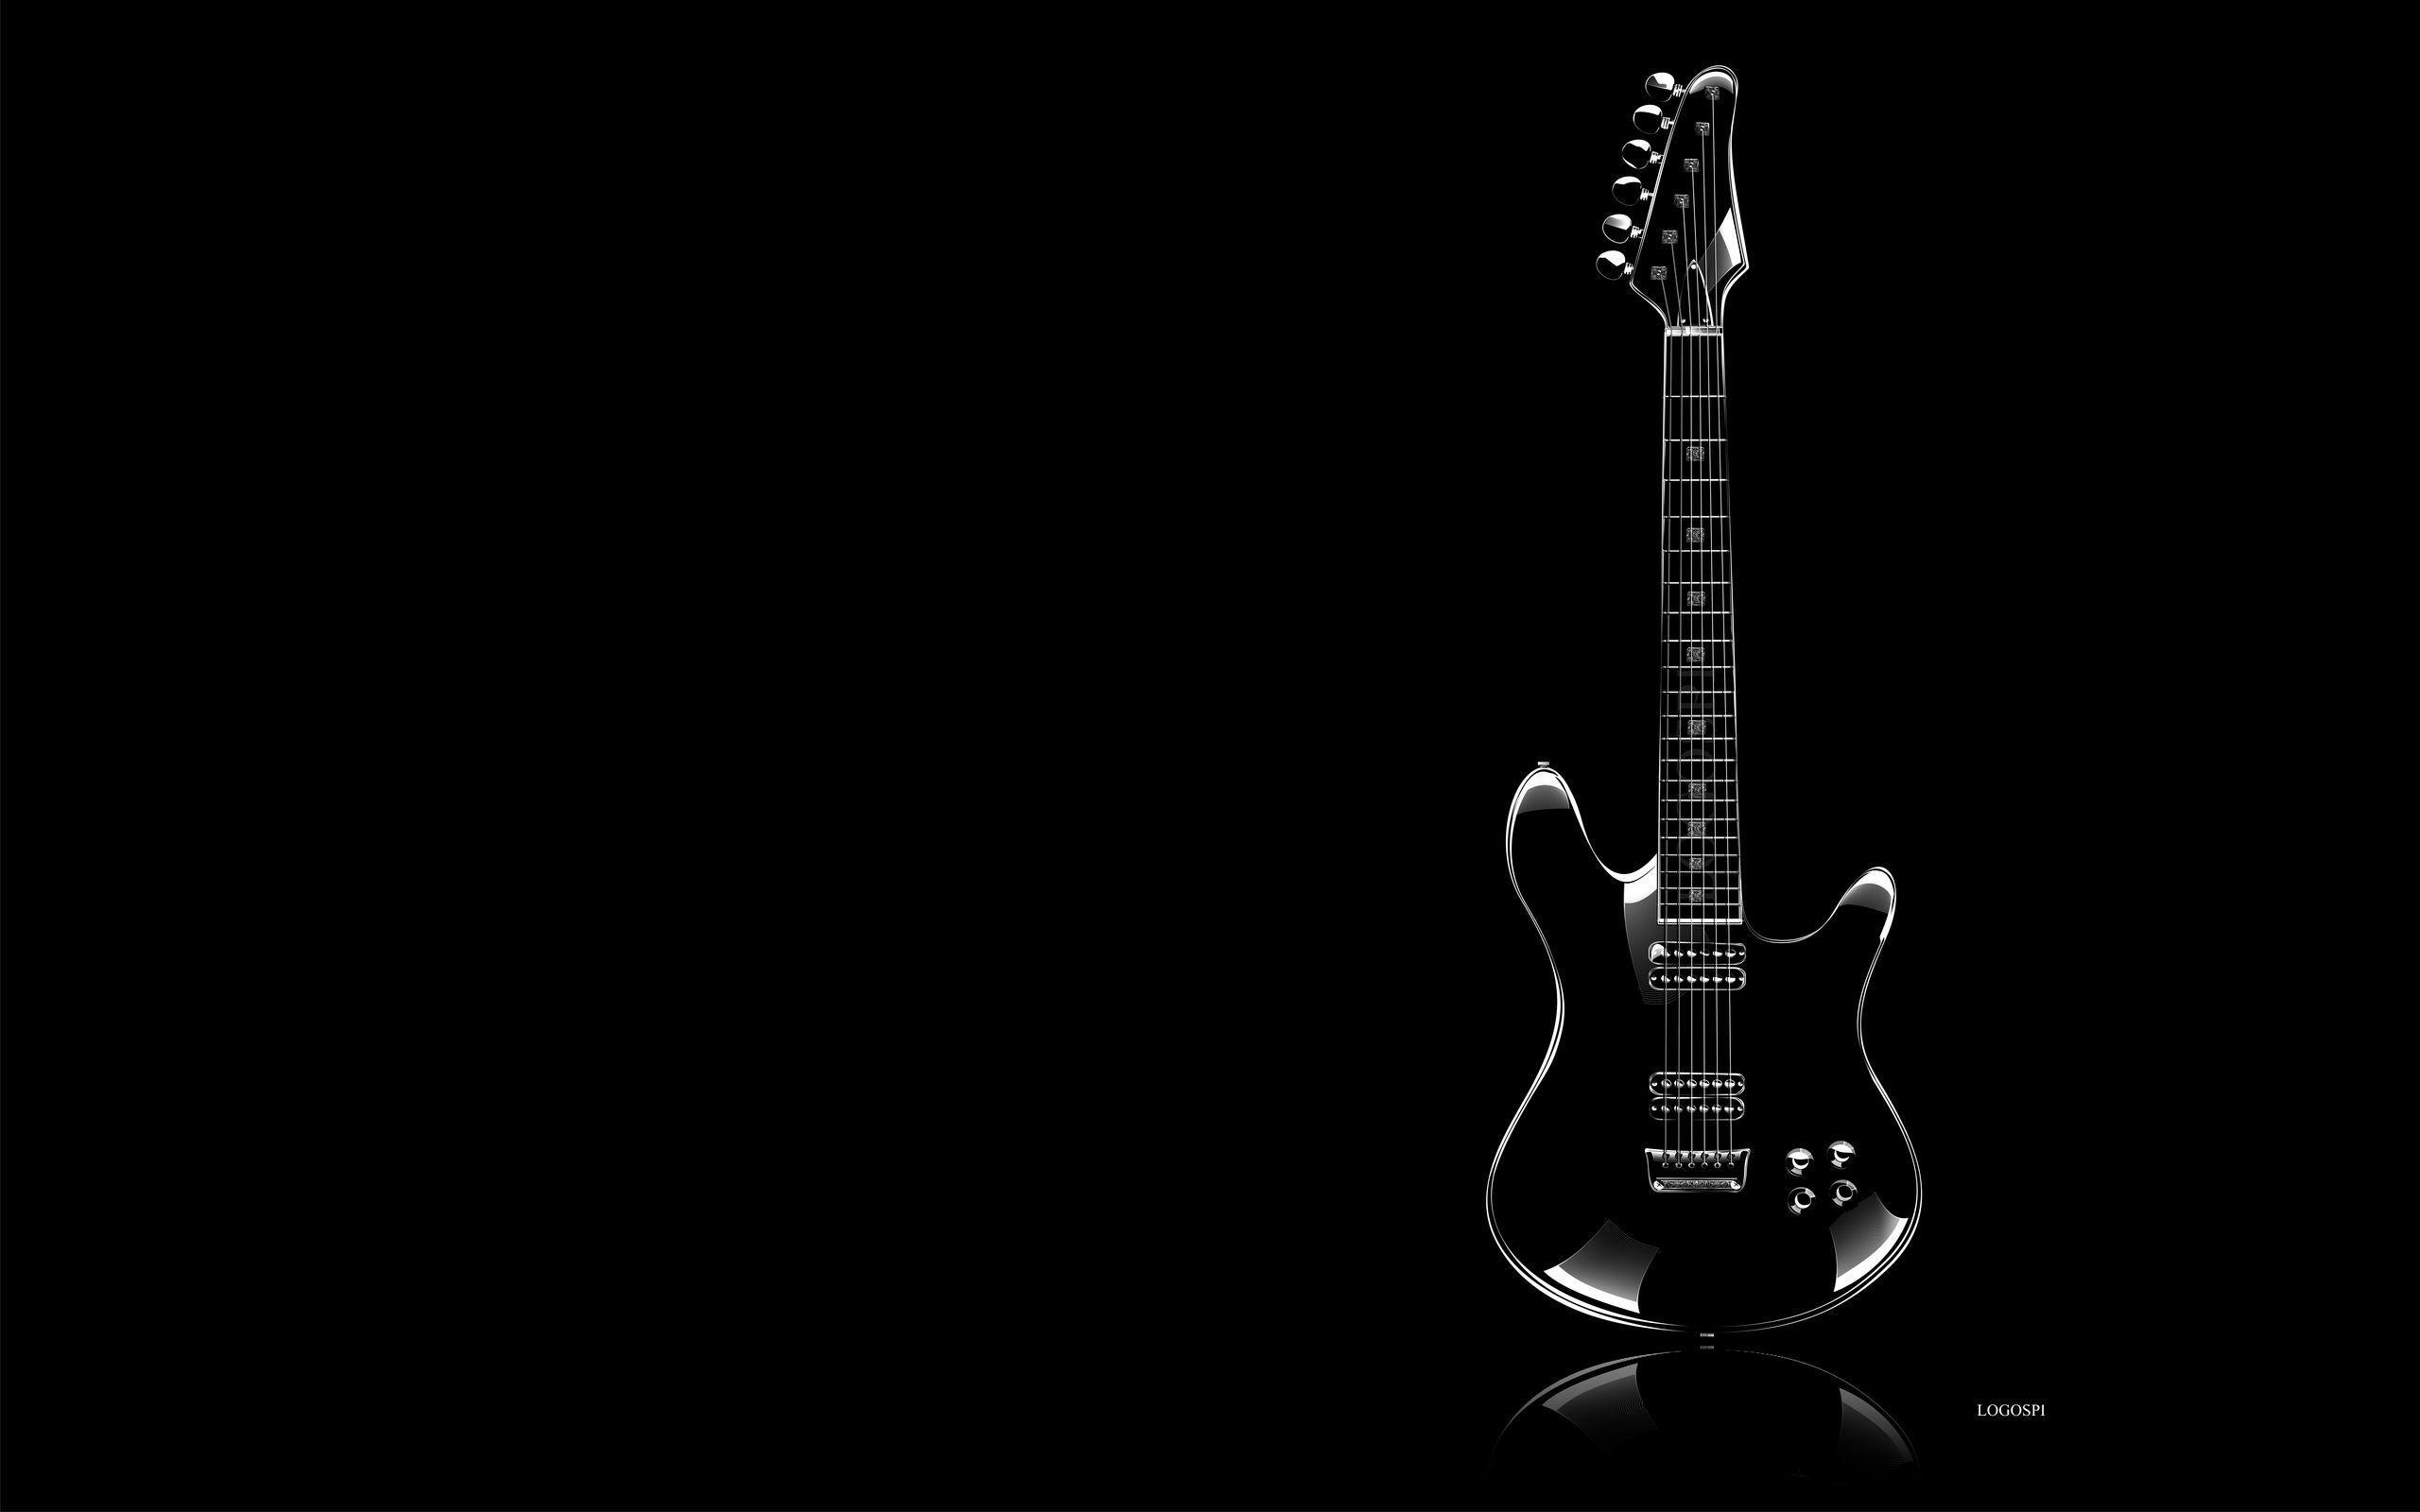 Guitar Black Backgrounds 2560x1600